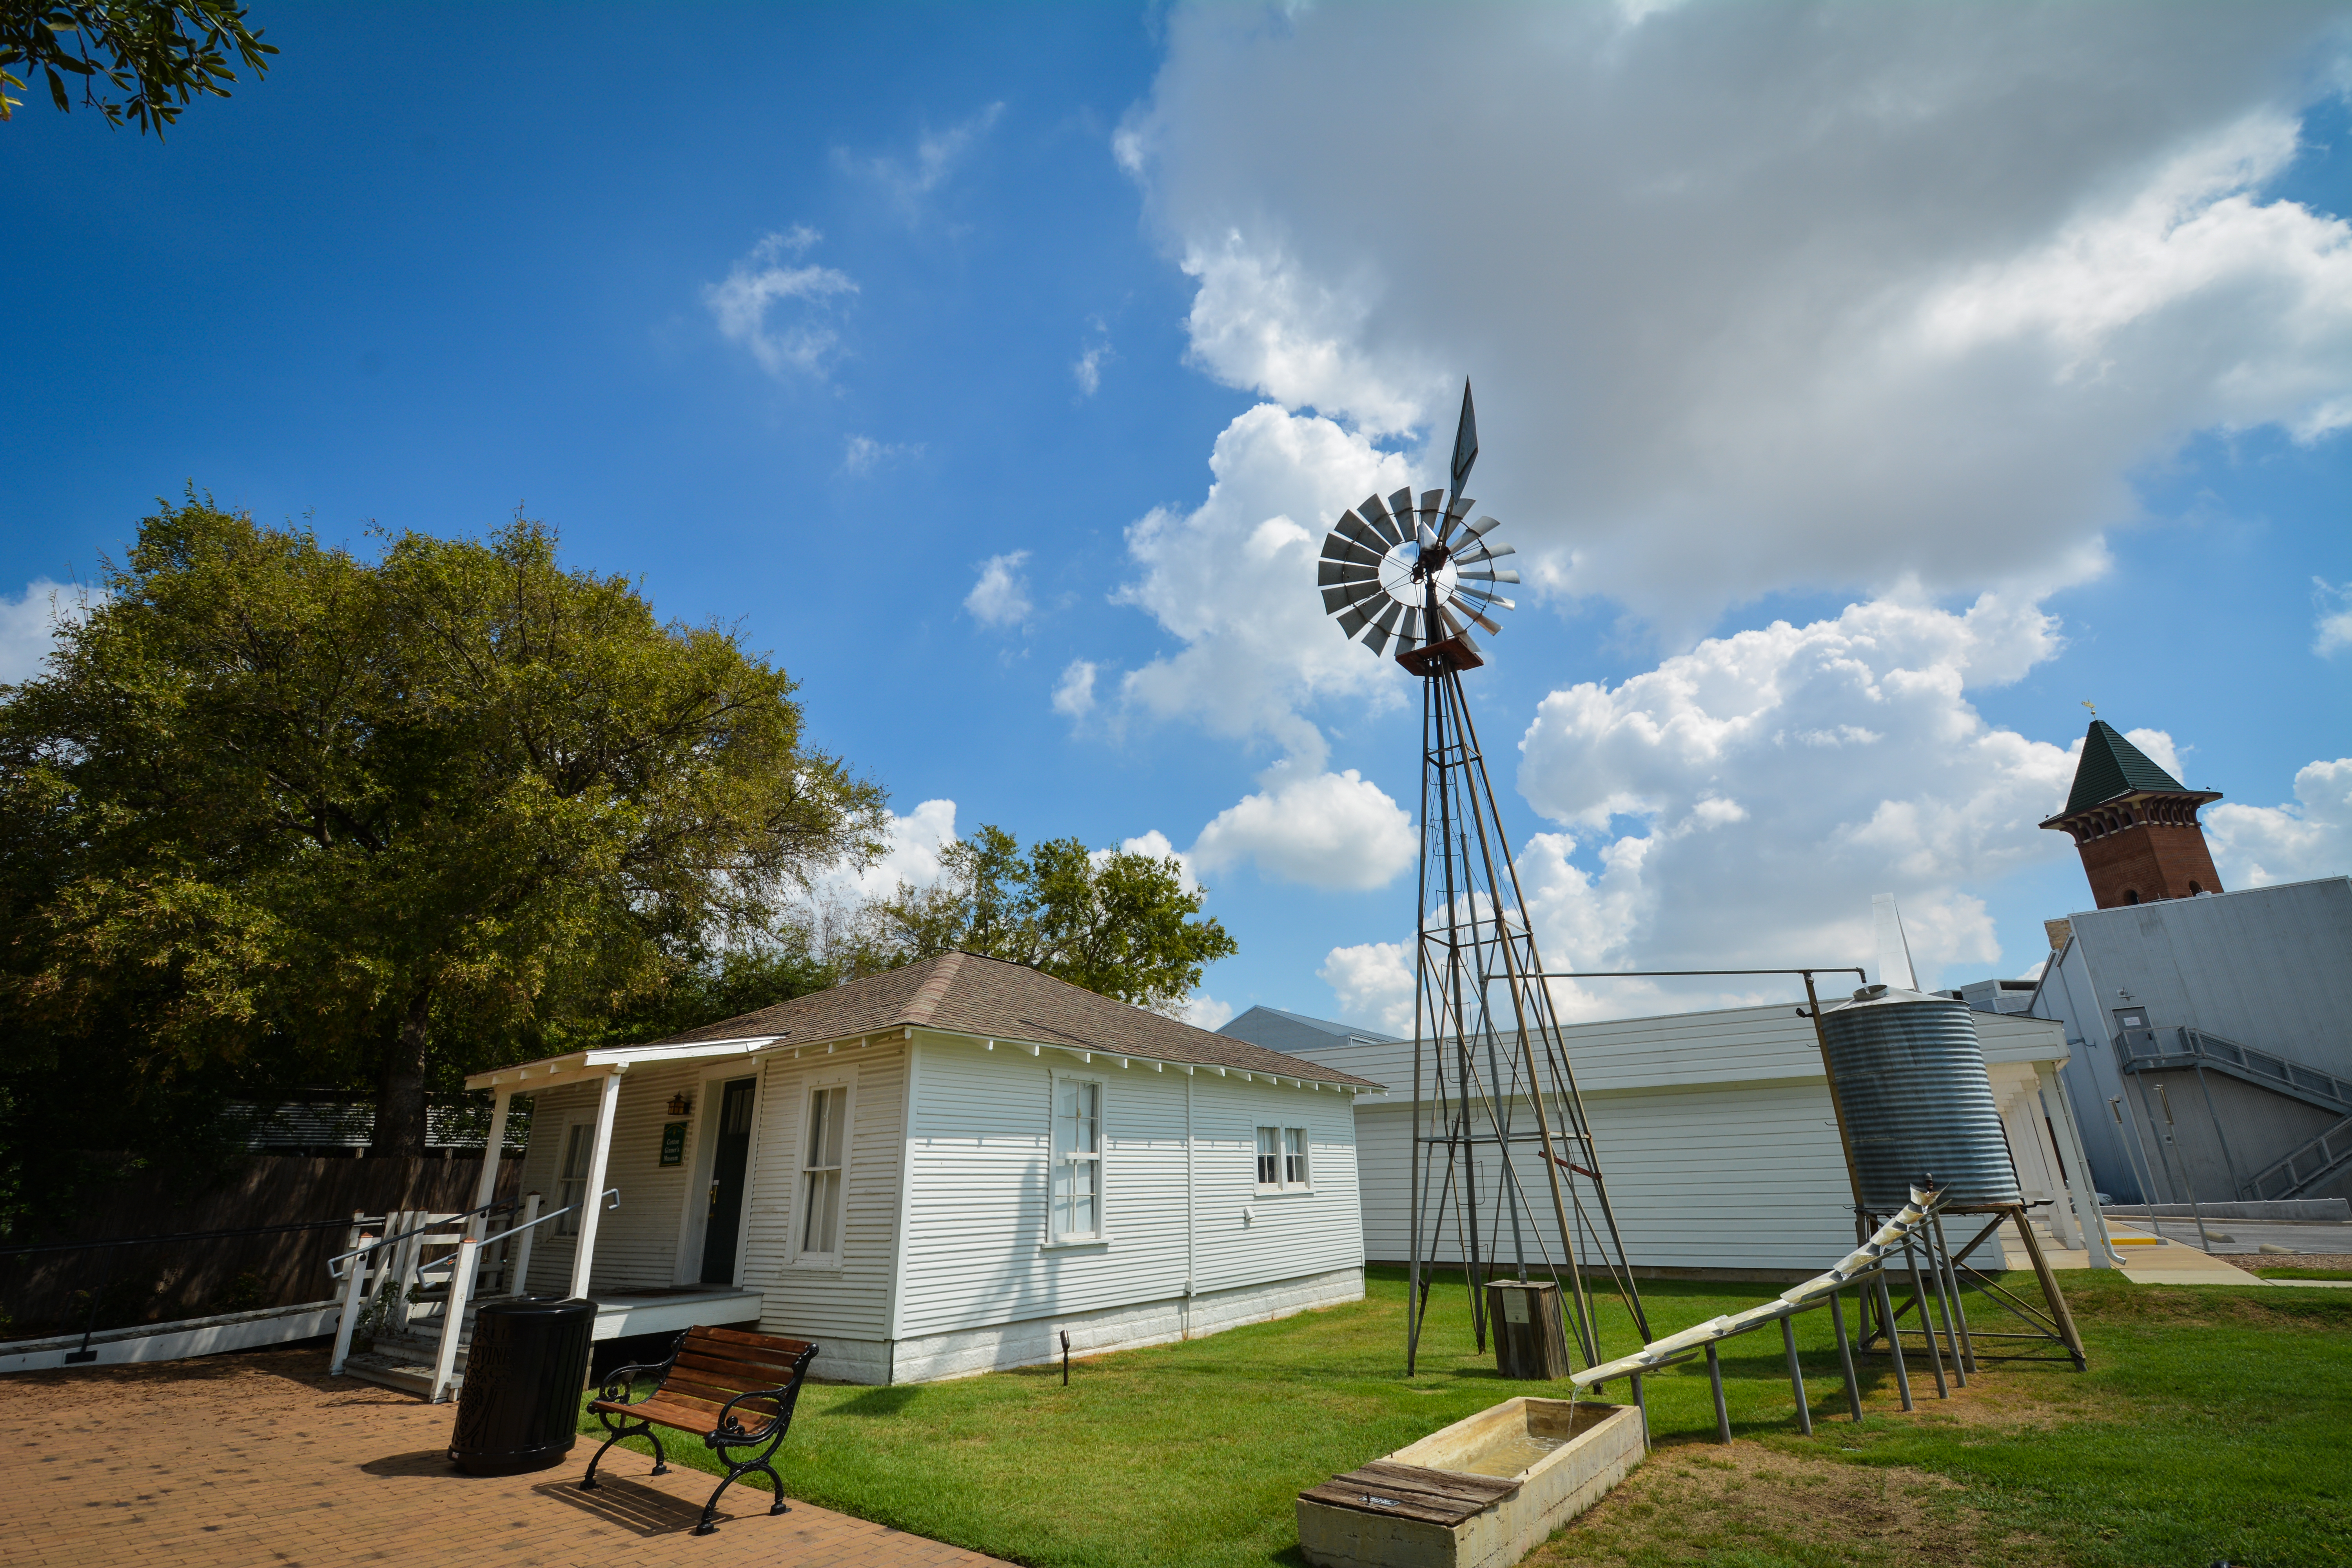 Visit the Settlement to City Museums in Grapevine